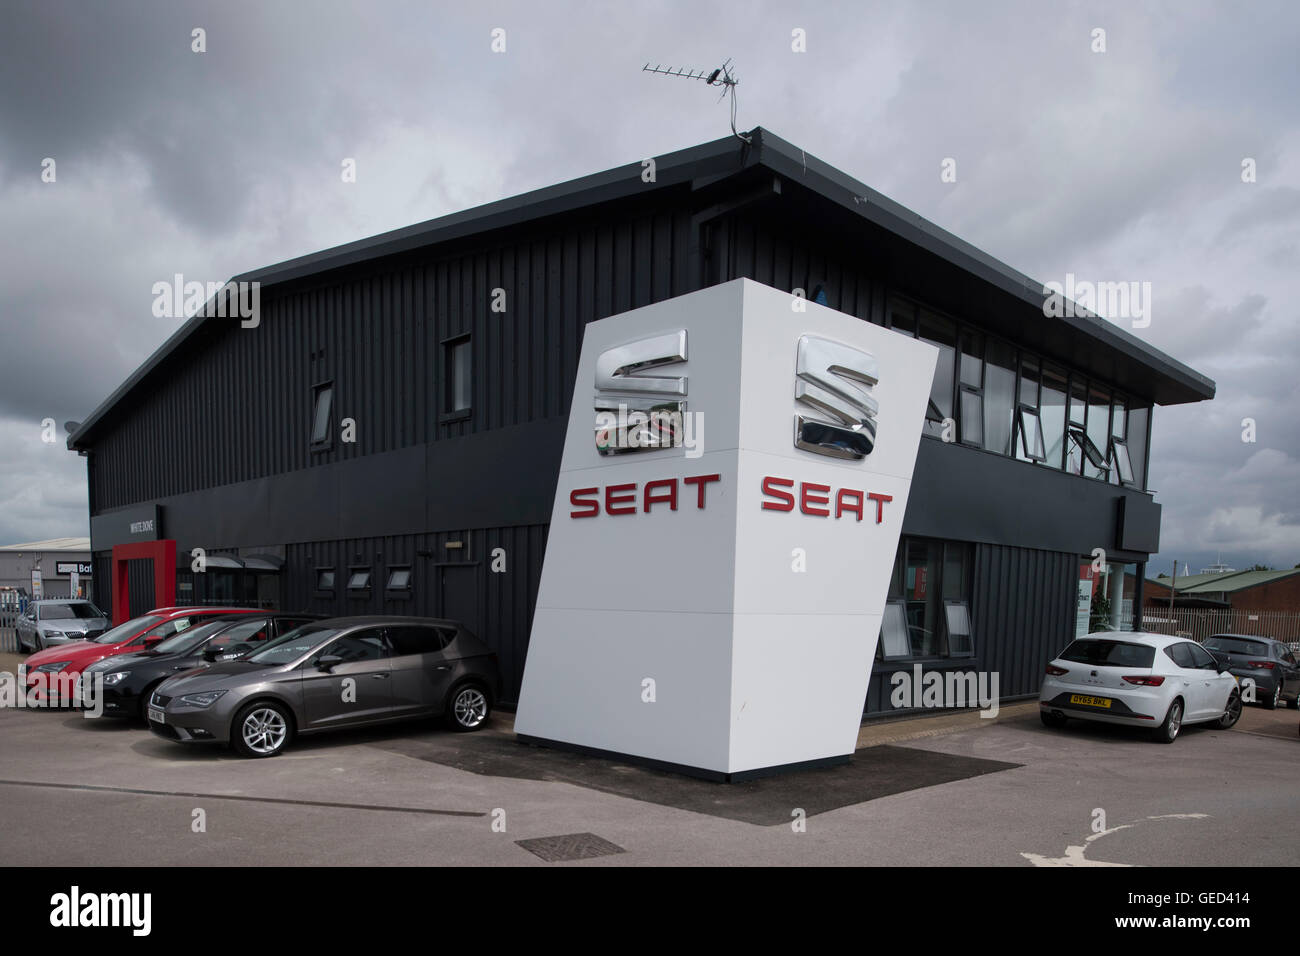 Seat car garage sign logo stock photo 112155936 alamy for Garage seat 78